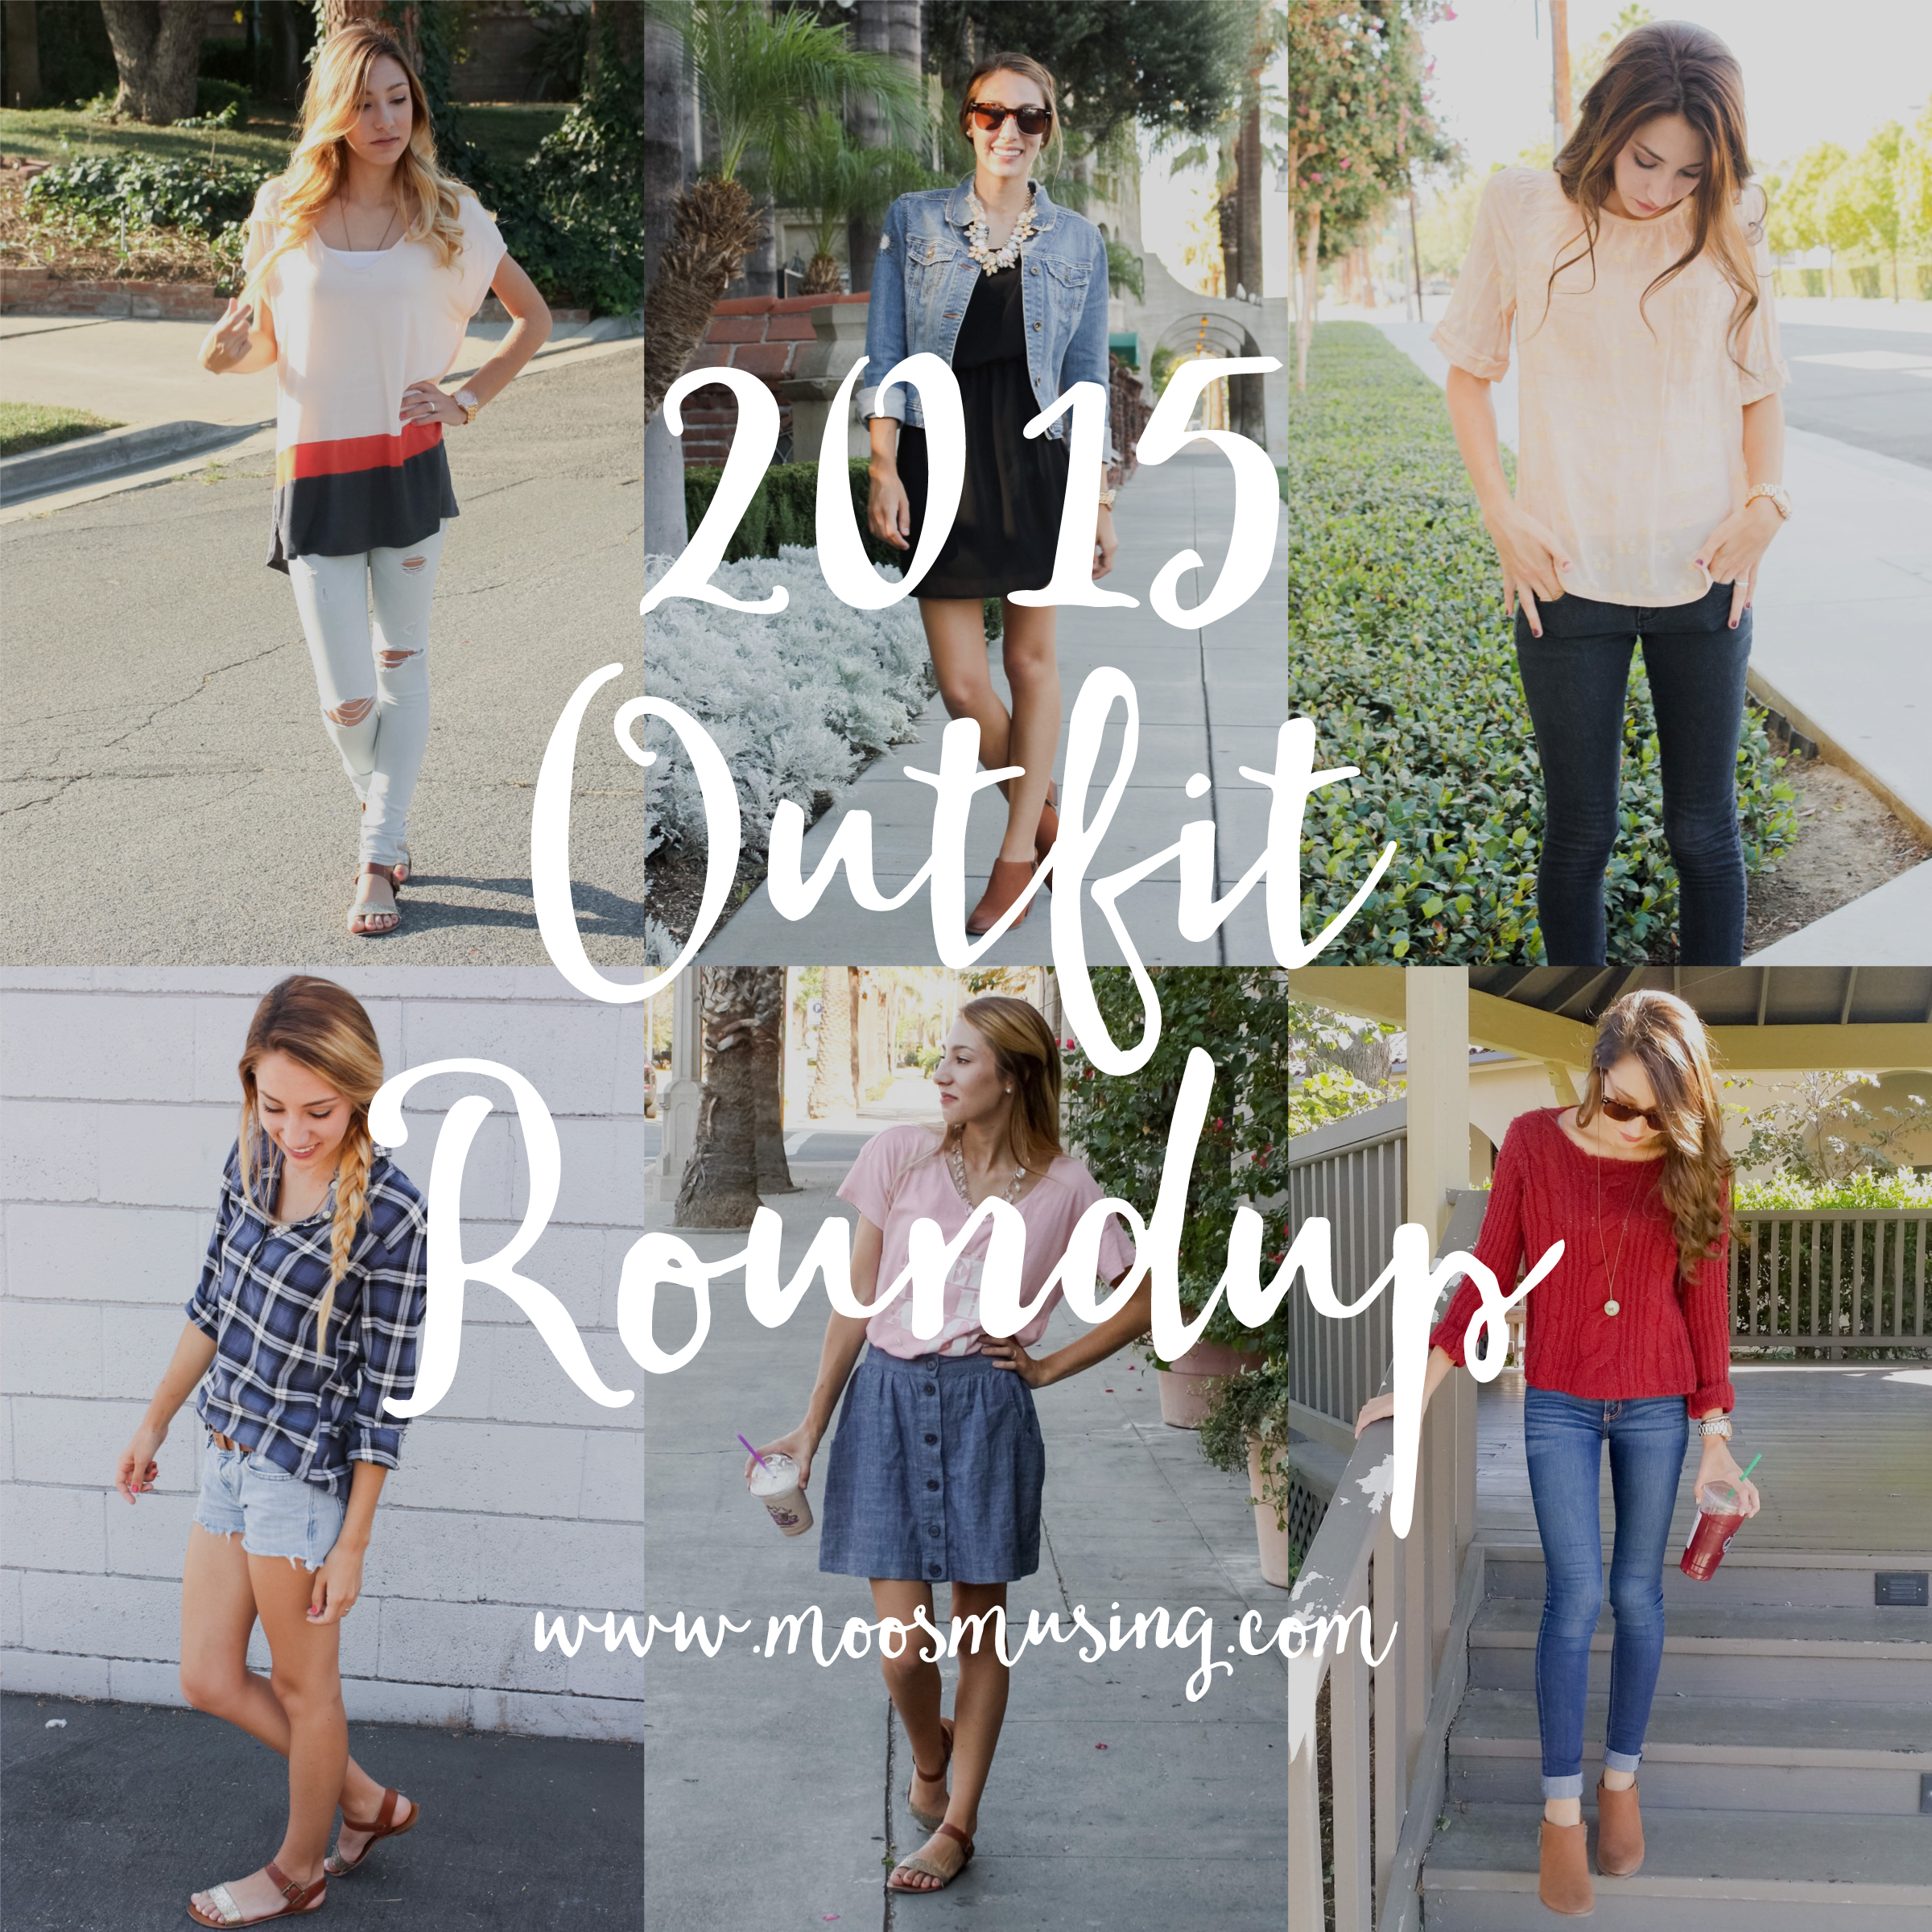 Moo's Musing 2015 Outfit roundup inspiration